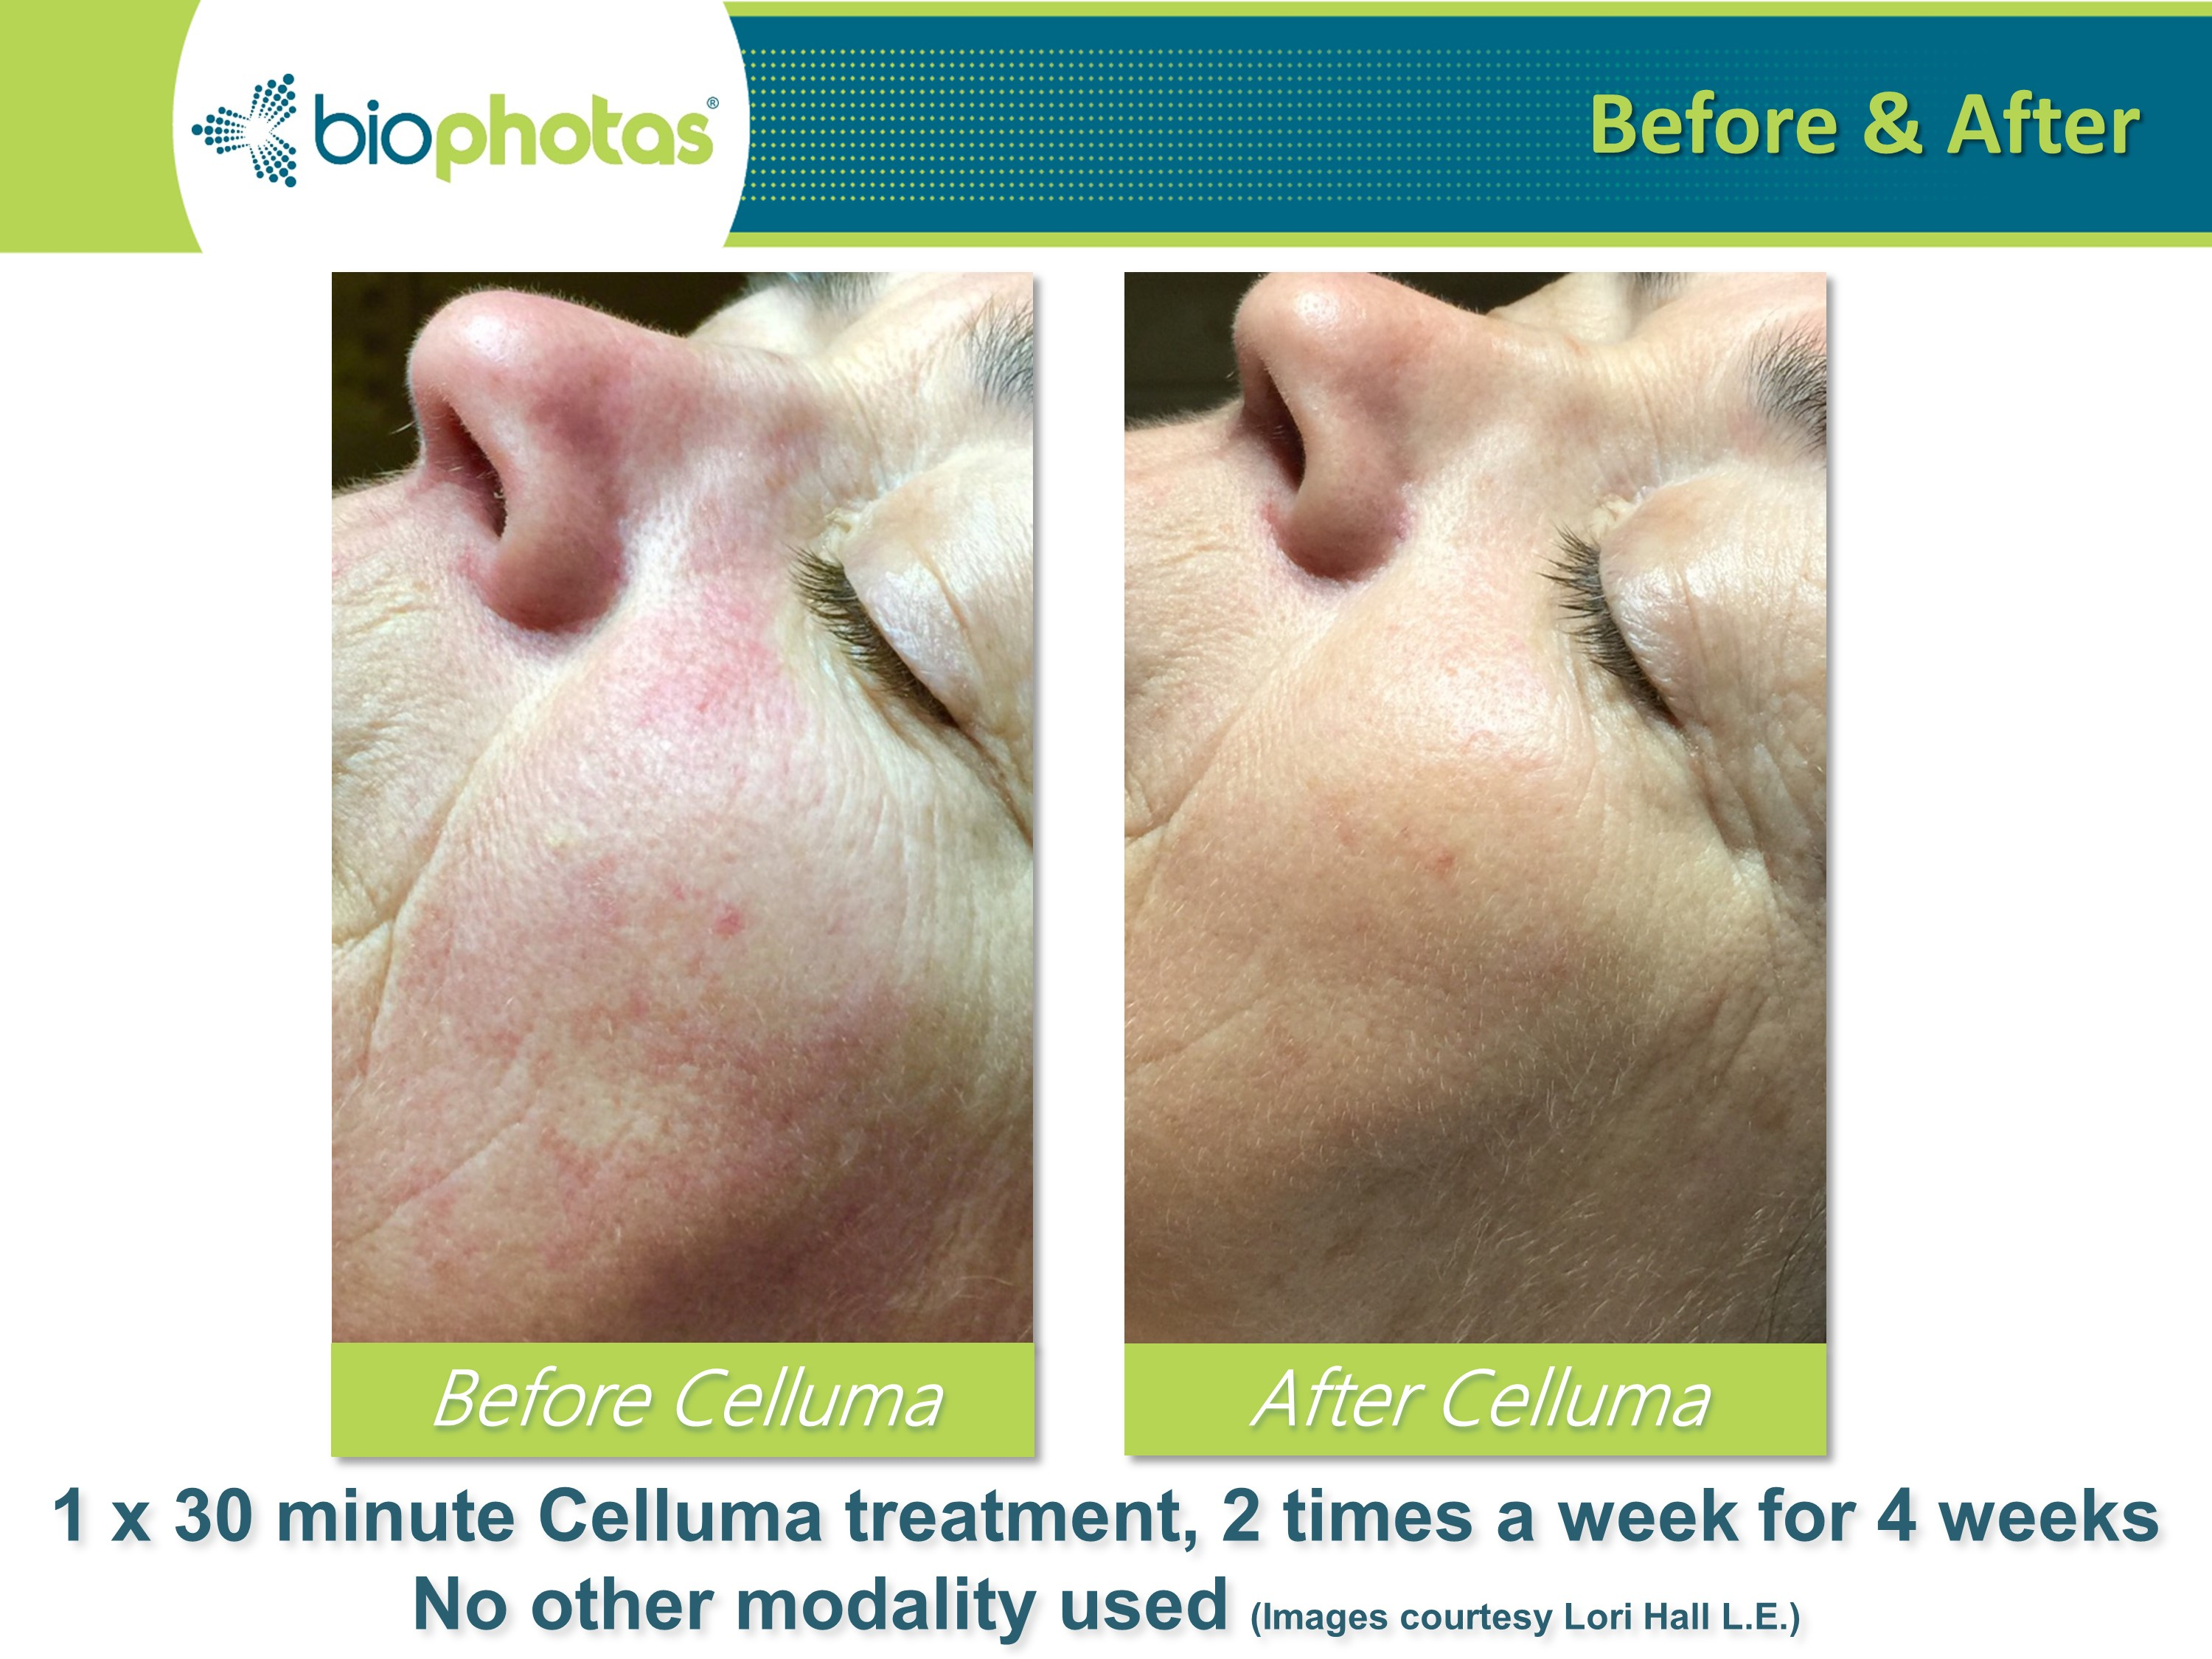 Celluma LED Light after 8 sessions